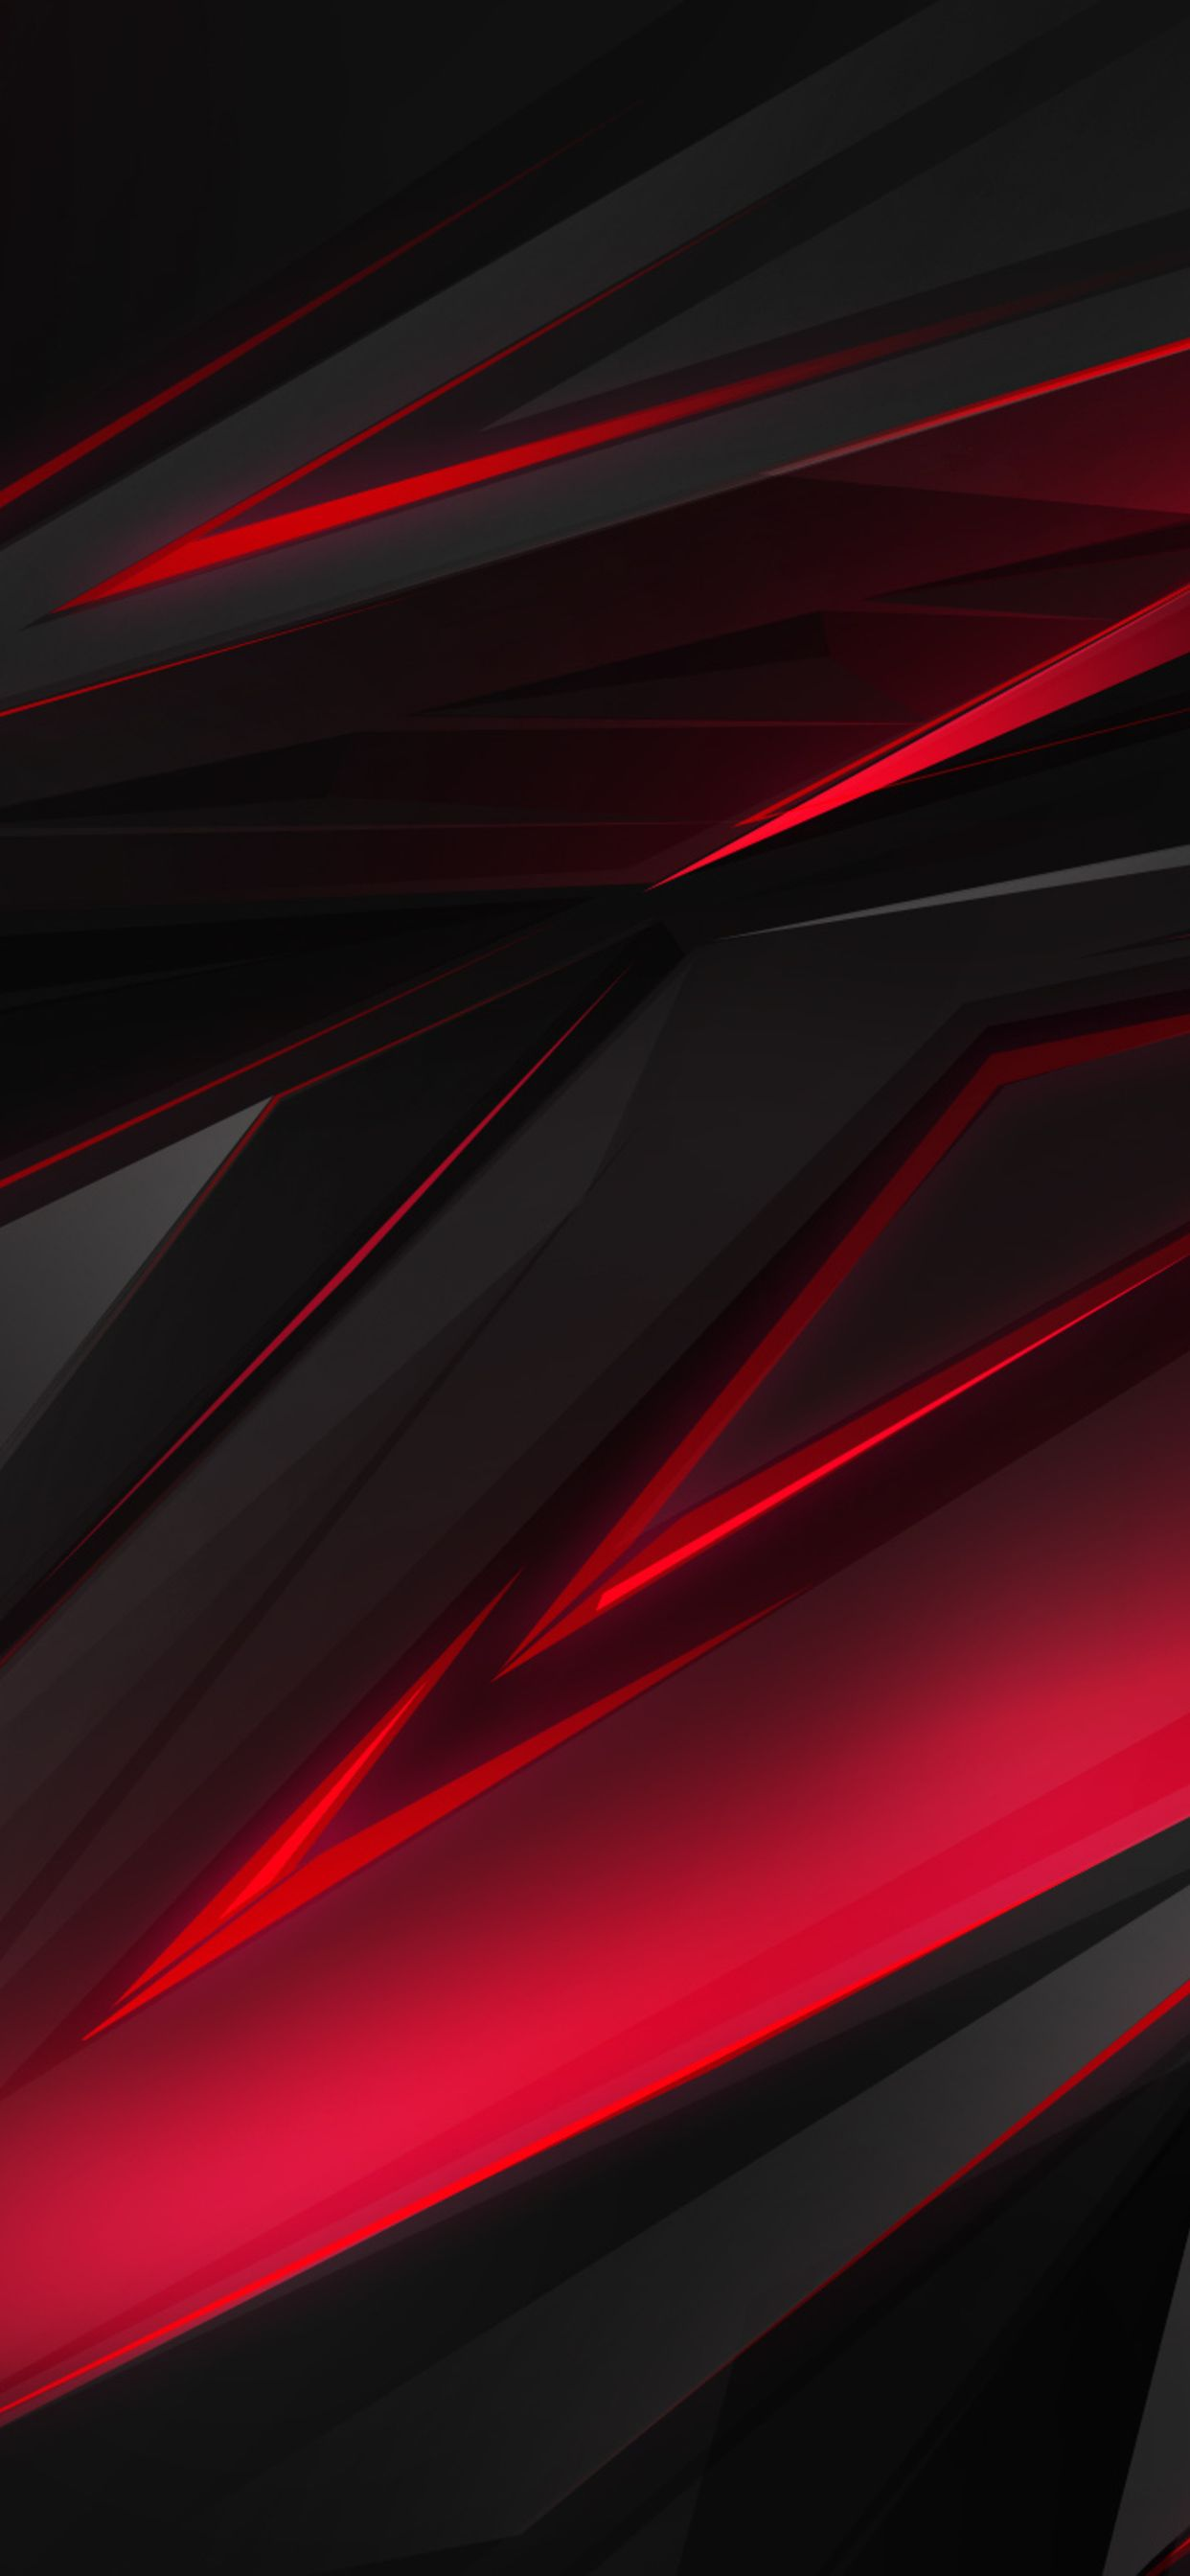 Polygonal Abstract Red Dark Wallpaper Android Wallpaper Red Dark Red Wallpaper Dark Iphone Backgrounds